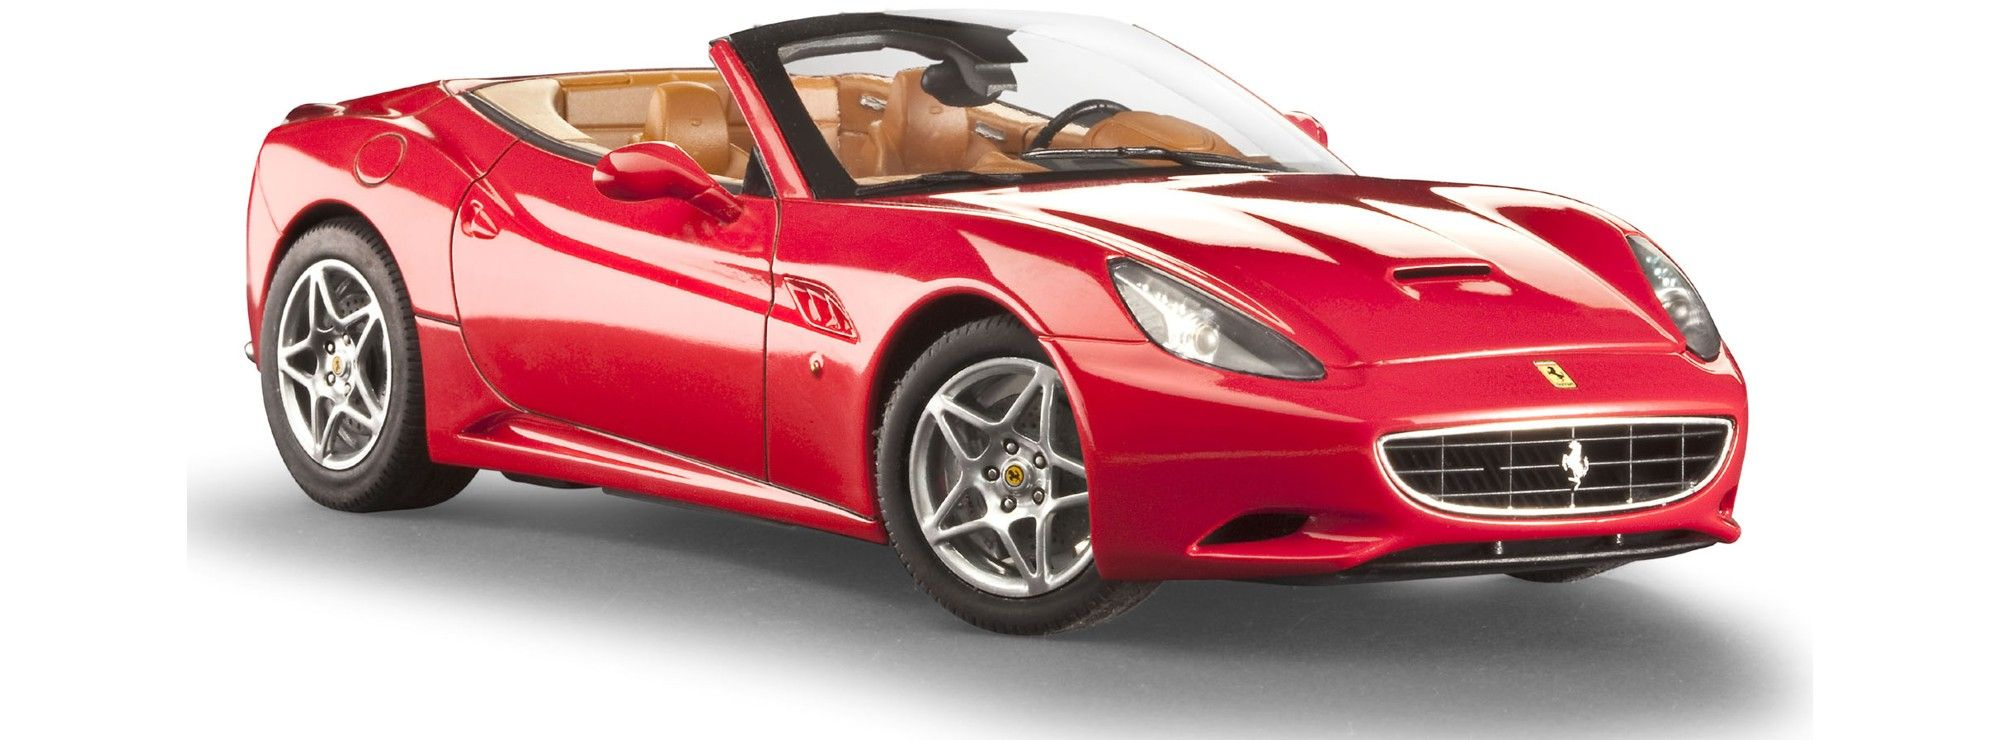 ausverkauft 39 revell 07276 ferrari california open top. Black Bedroom Furniture Sets. Home Design Ideas